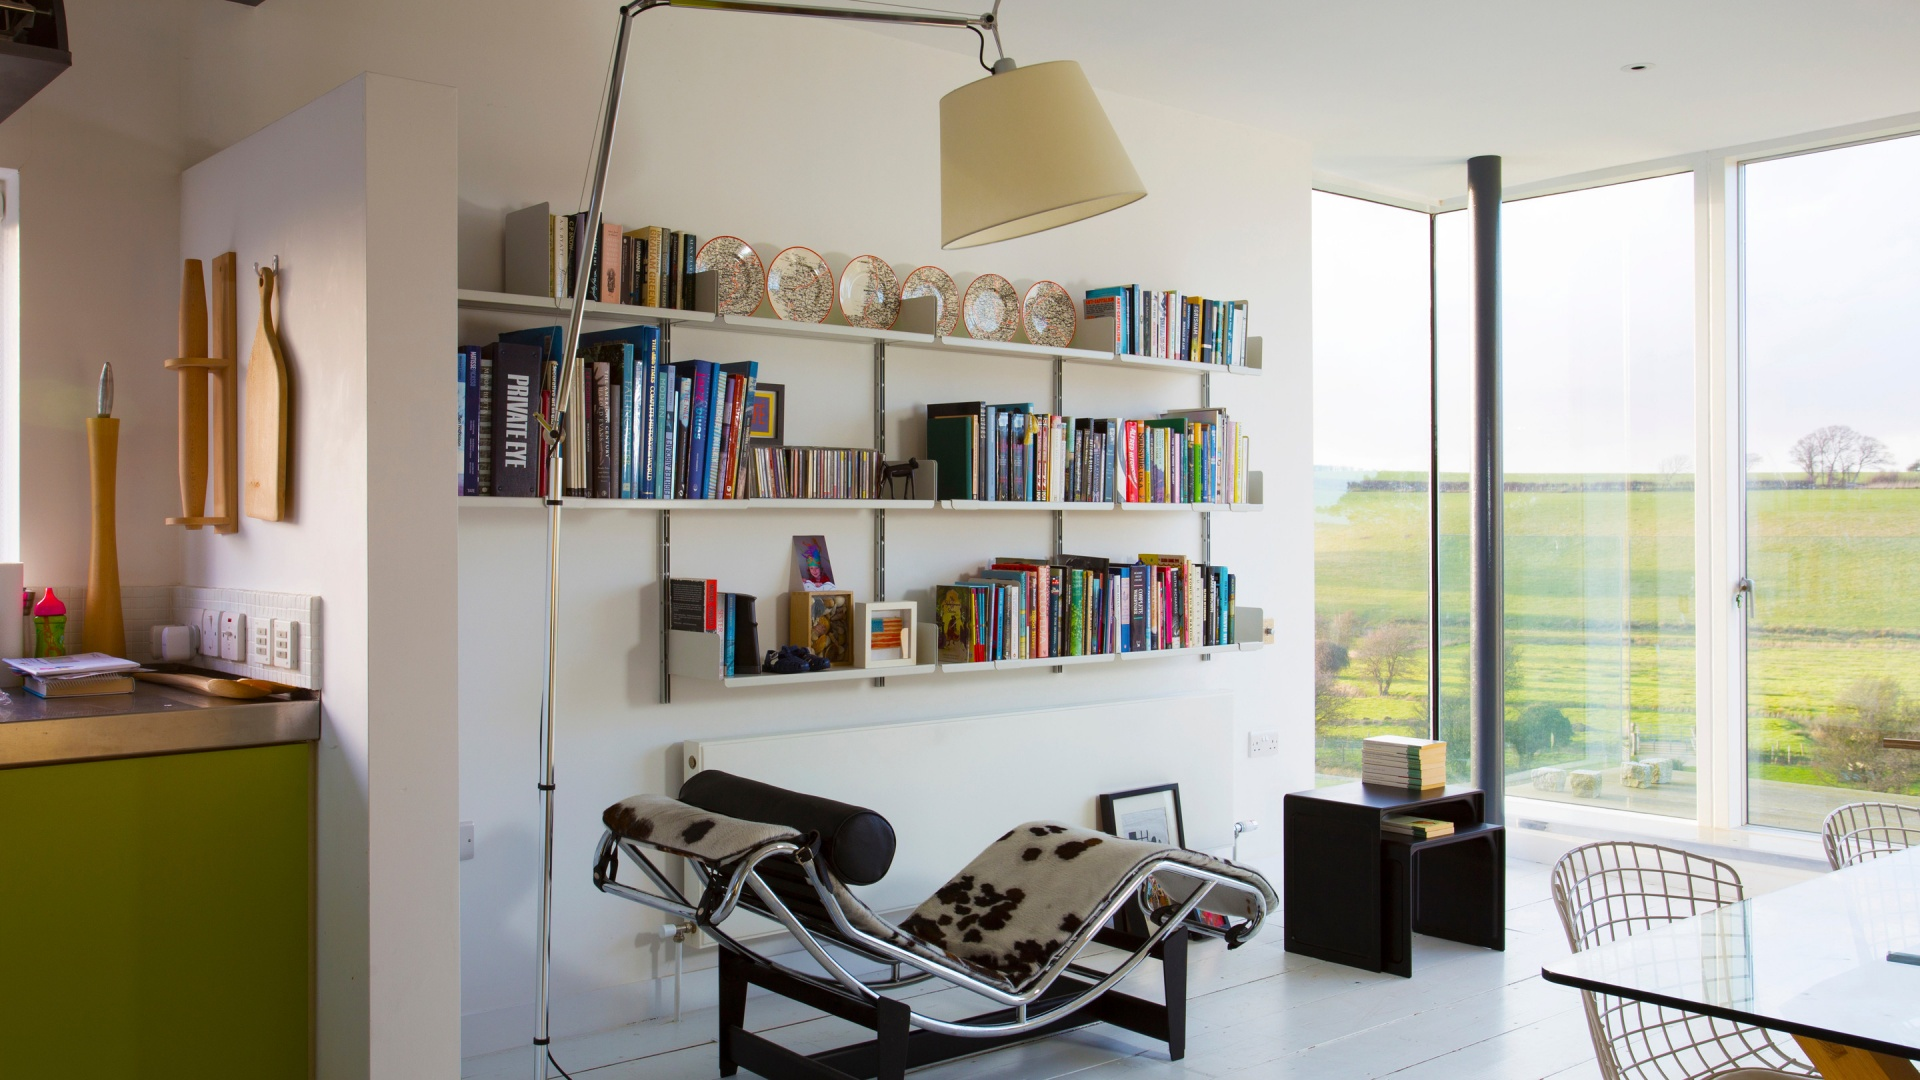 An invitingly open library above a radiator. Favourites picked out on the black 621 Table